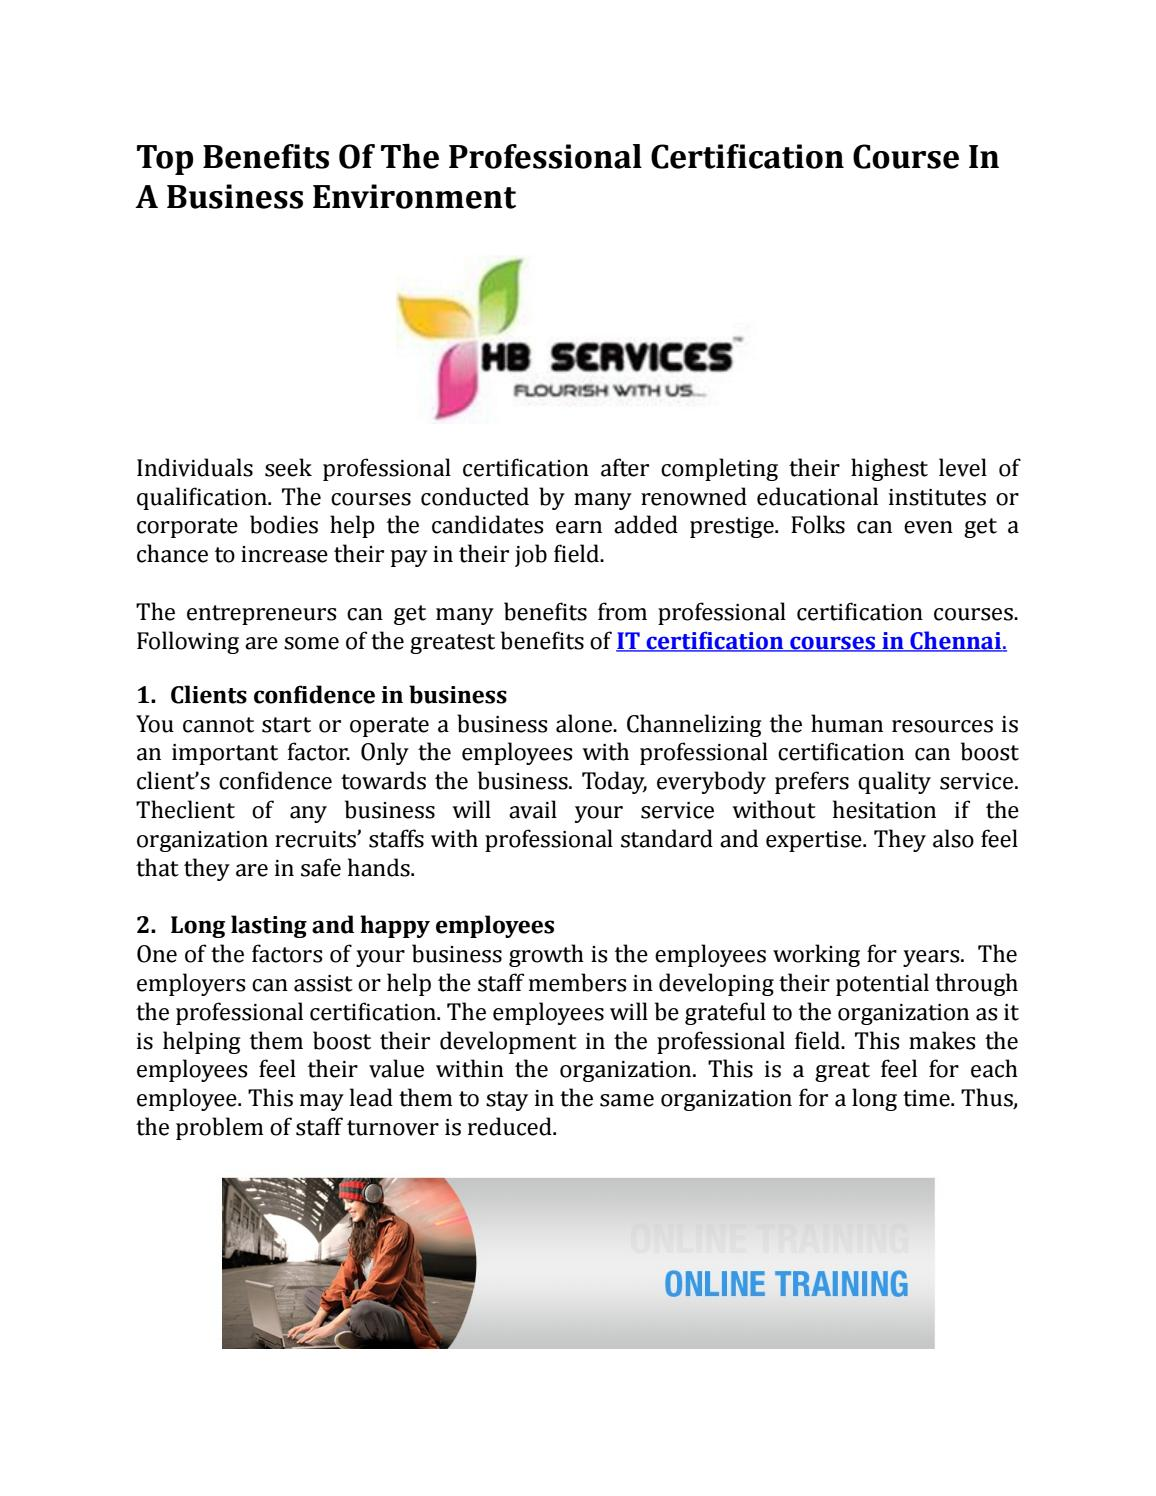 Top Benefits Of The Professional Certification Course In A Business